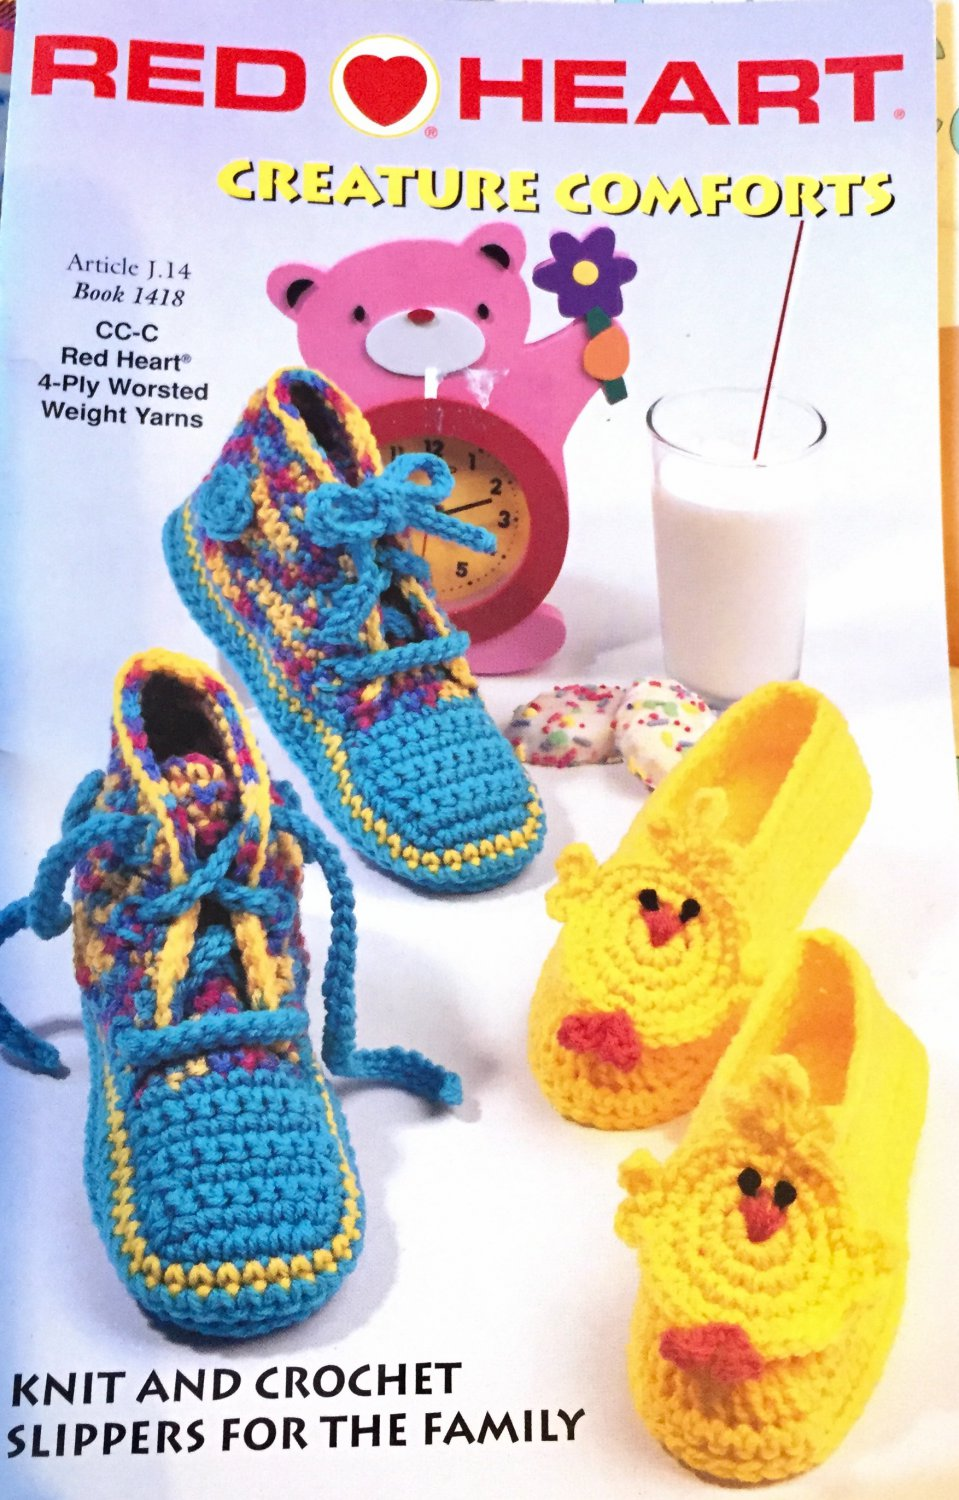 Red Heart Creature Comforts-Slipper Pattern Book-Knit and Crochet Slippers For The Family